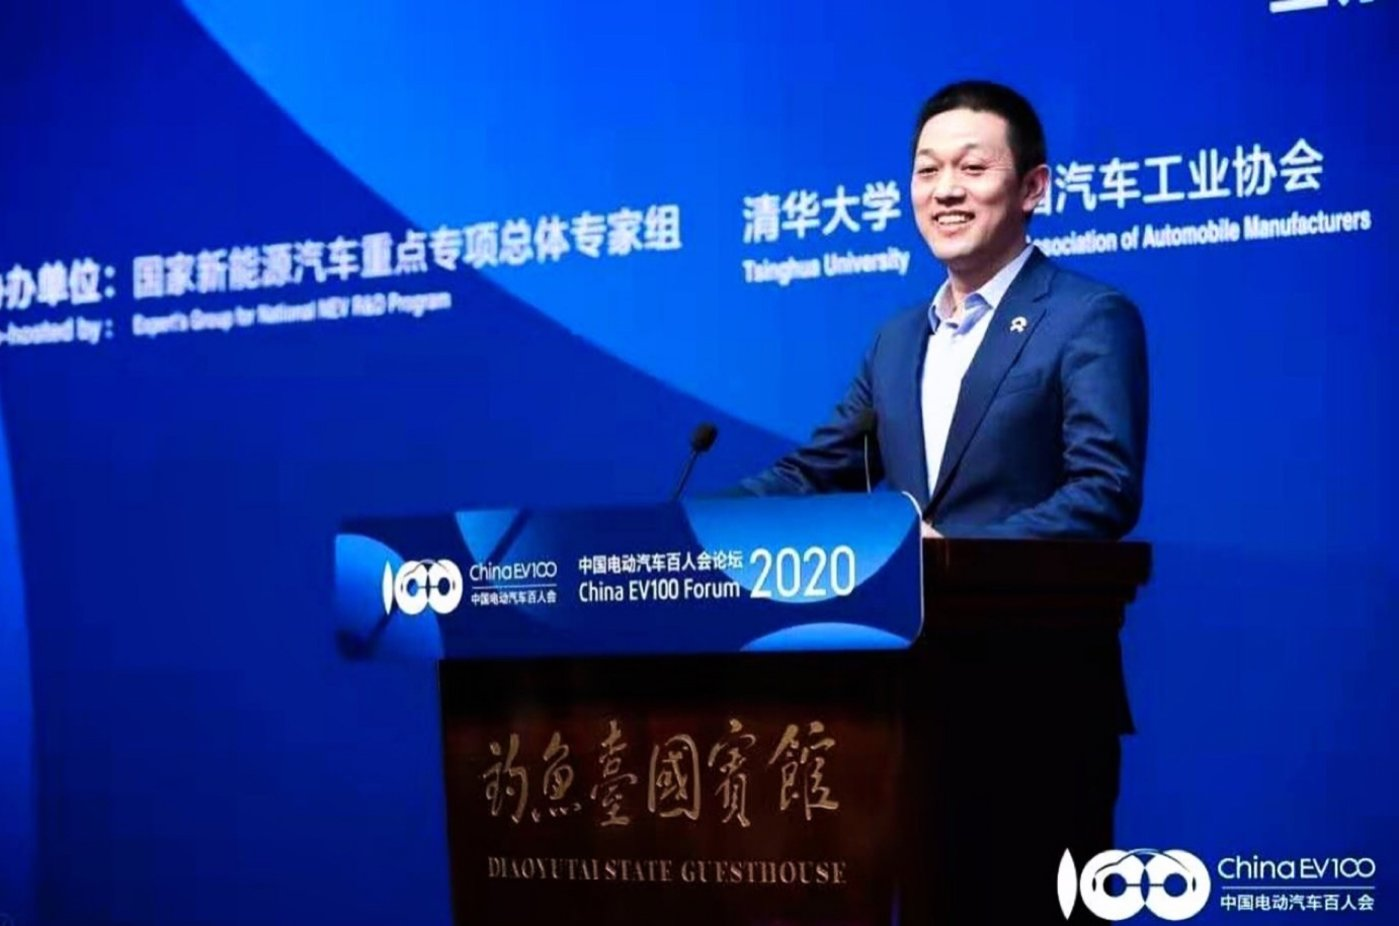 Lin Bin, founder and CEO of NIO, speaking at China EV100 Forum